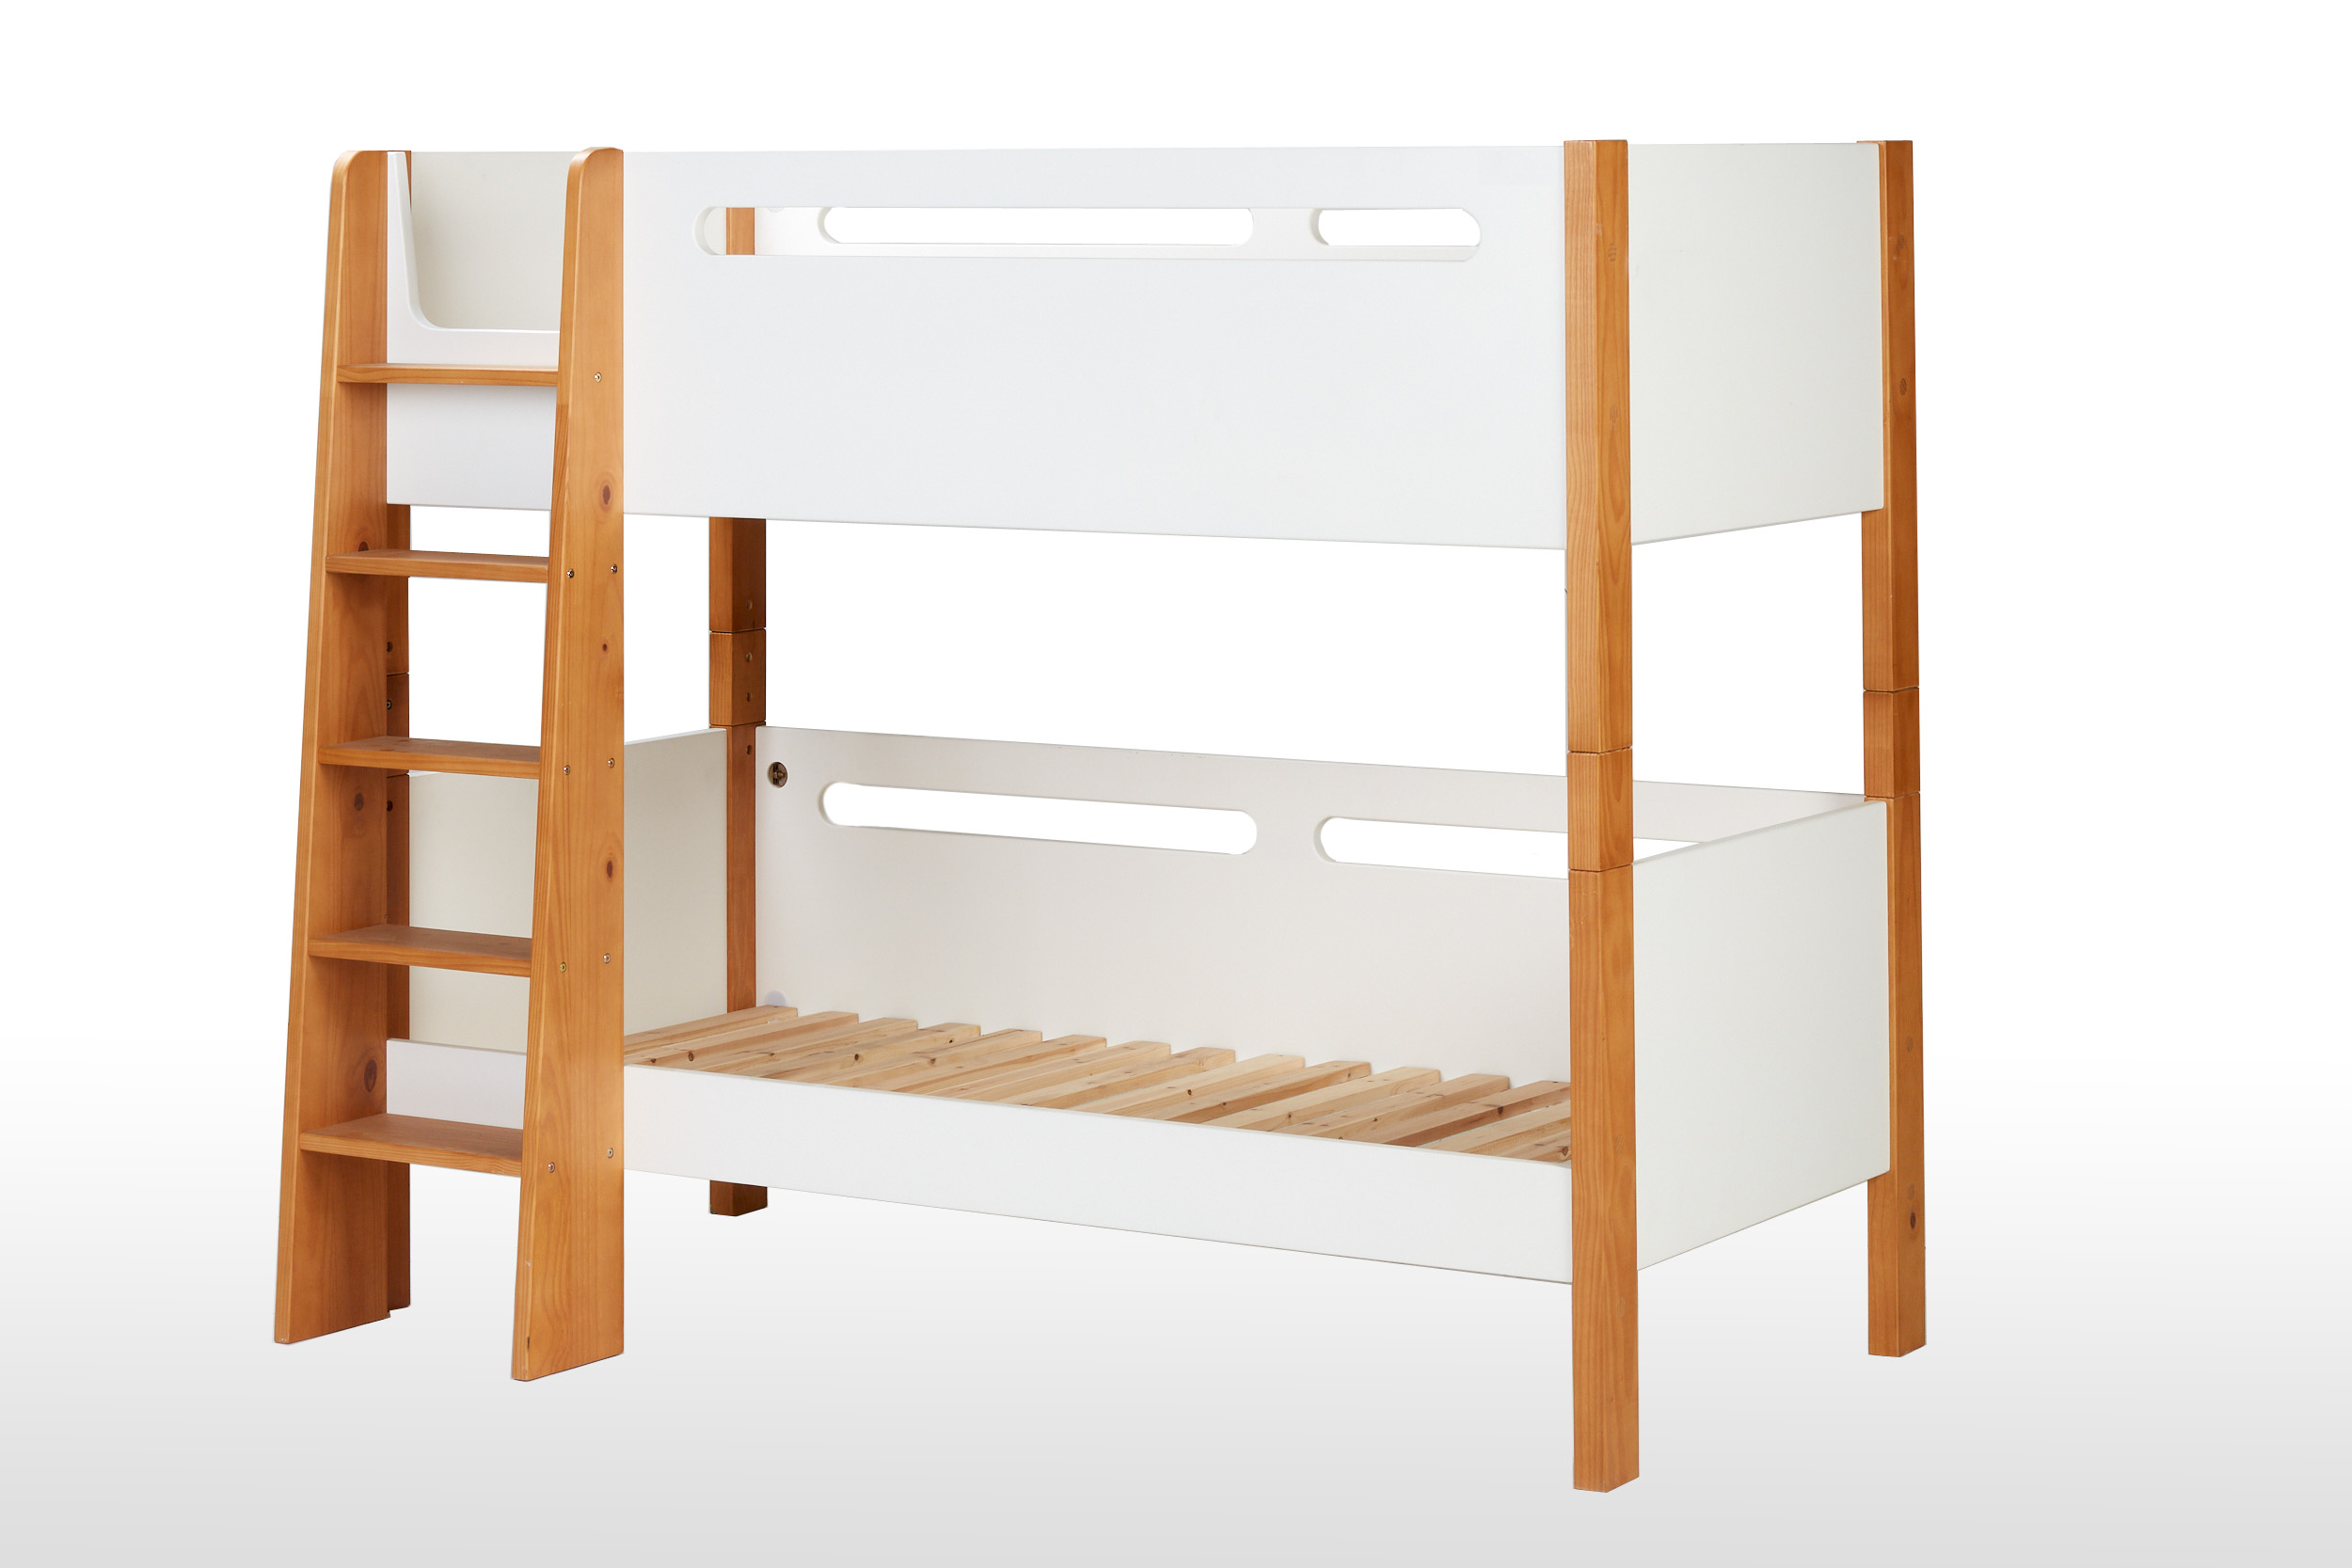 Asda bunk bed image by Chris Rout